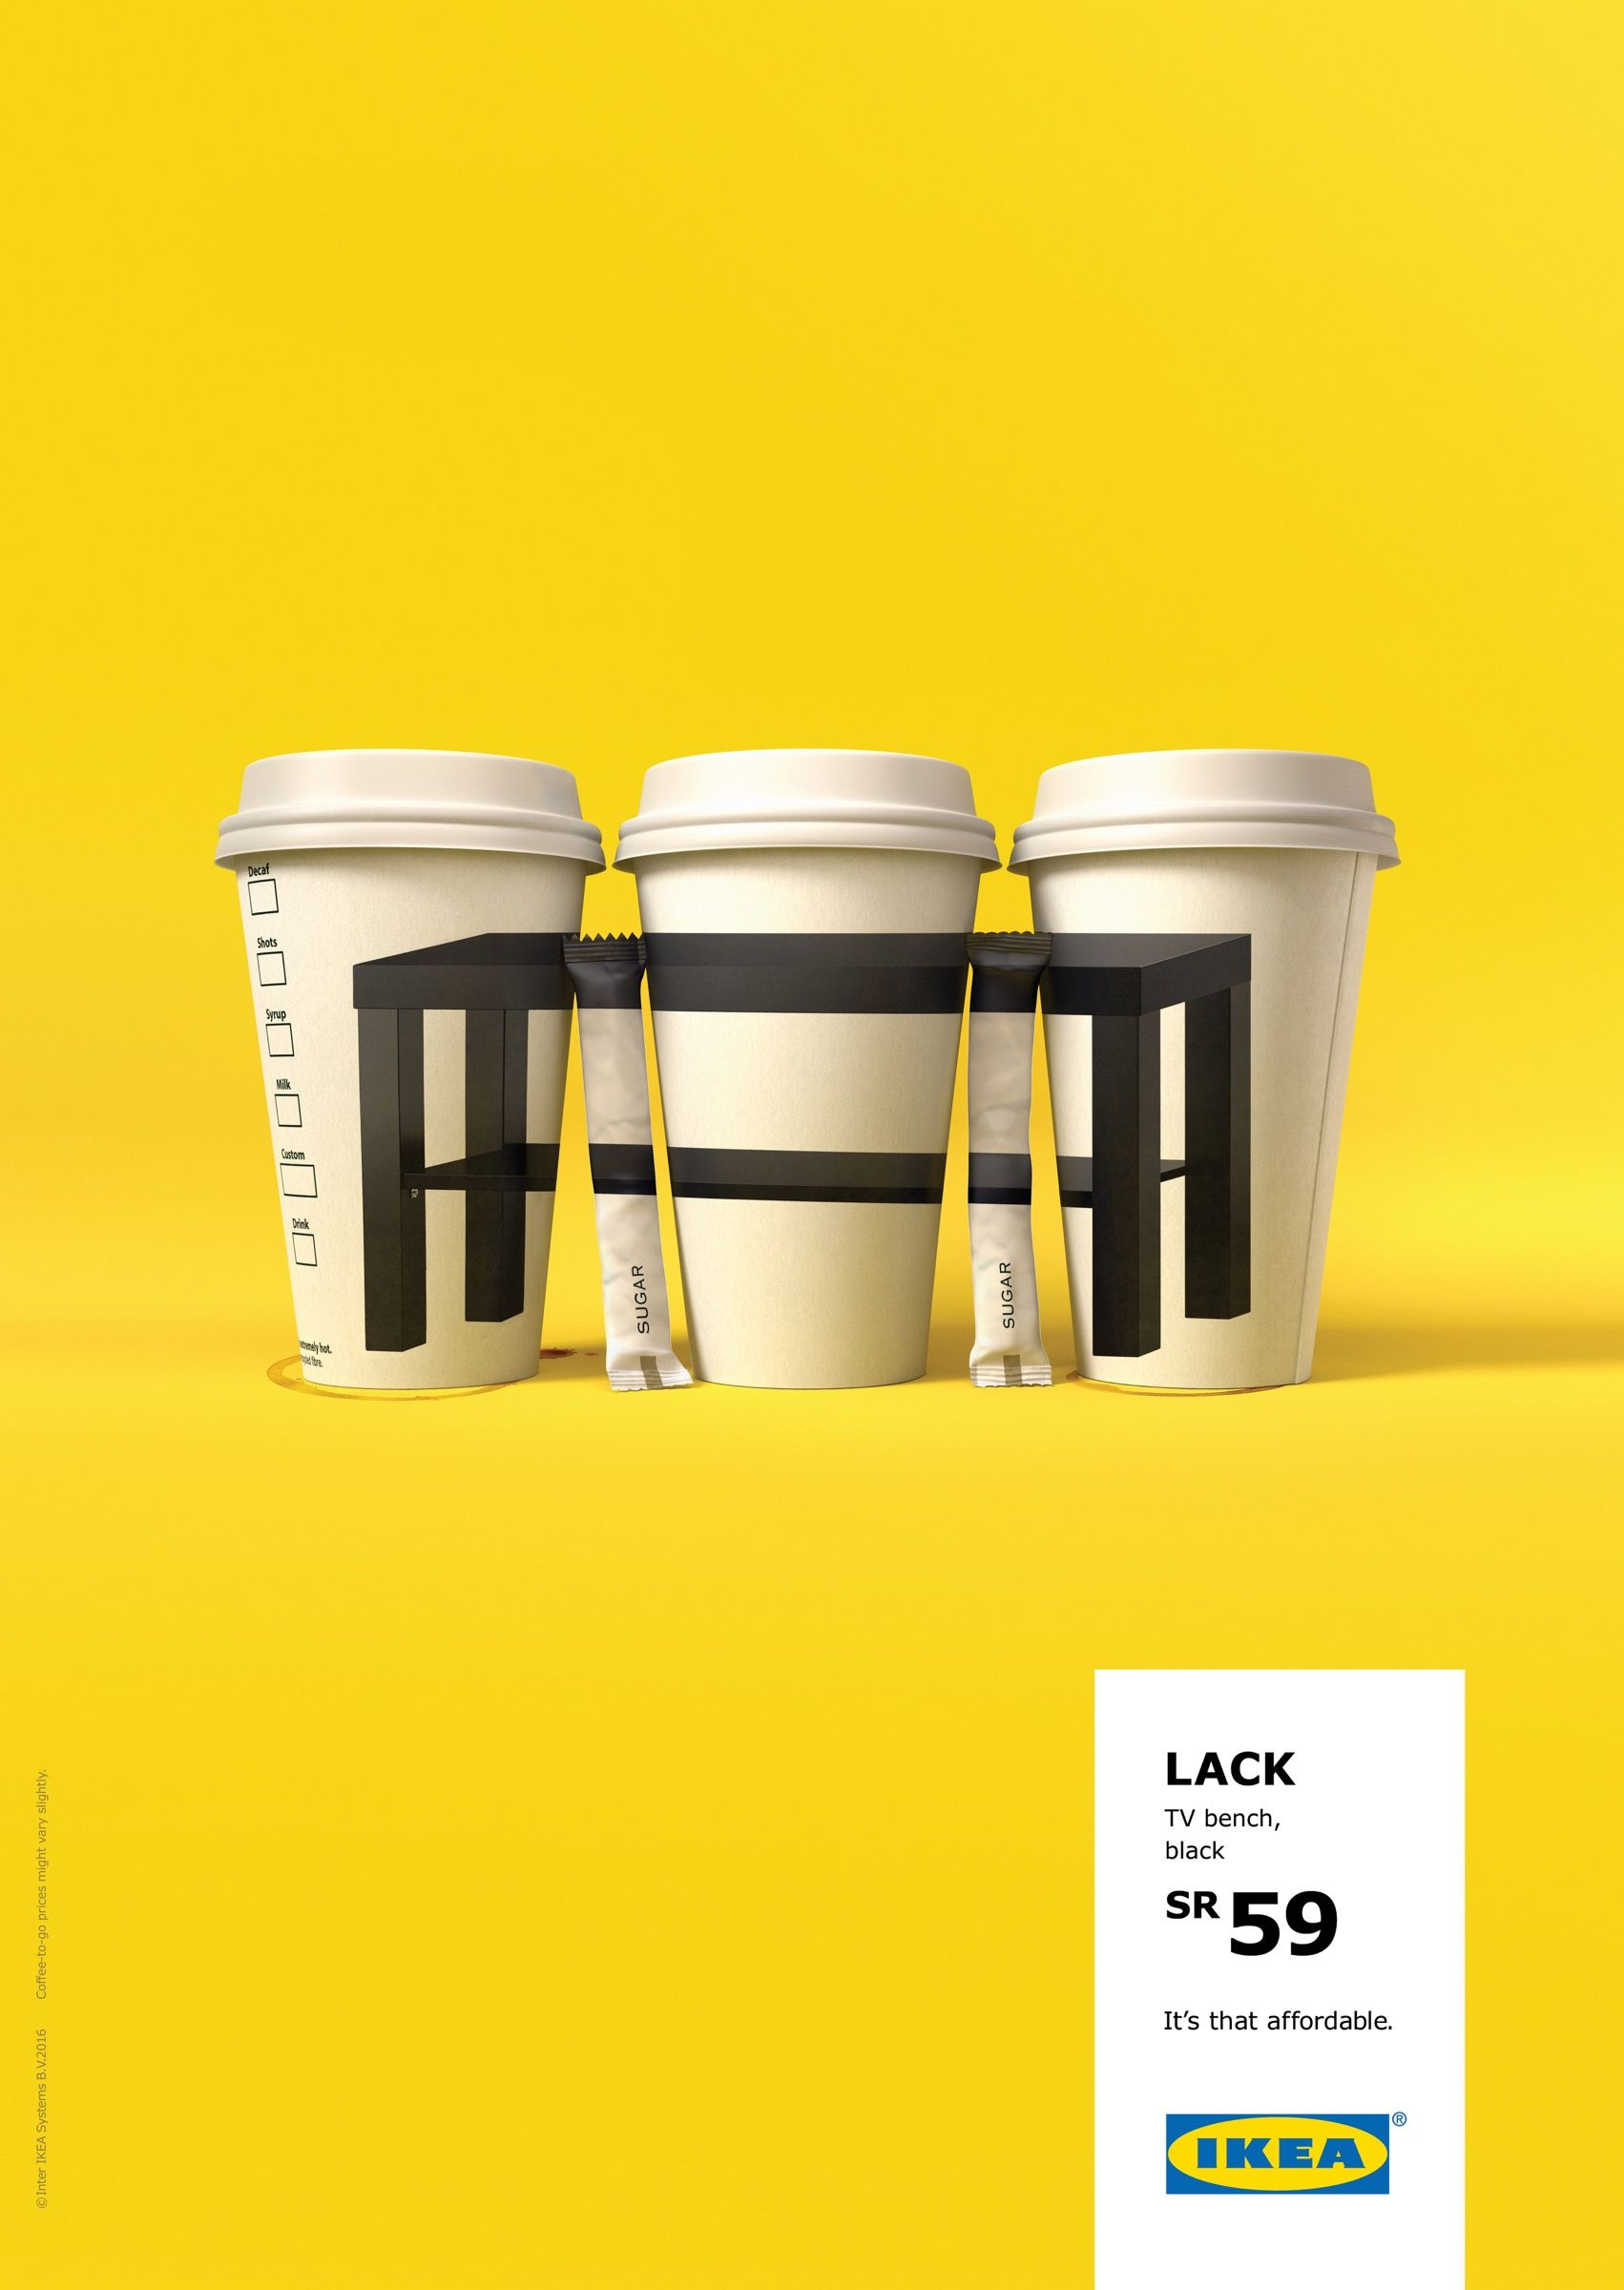 IKEA Displaying How Affordable The Product is By Ogilvy & Mather